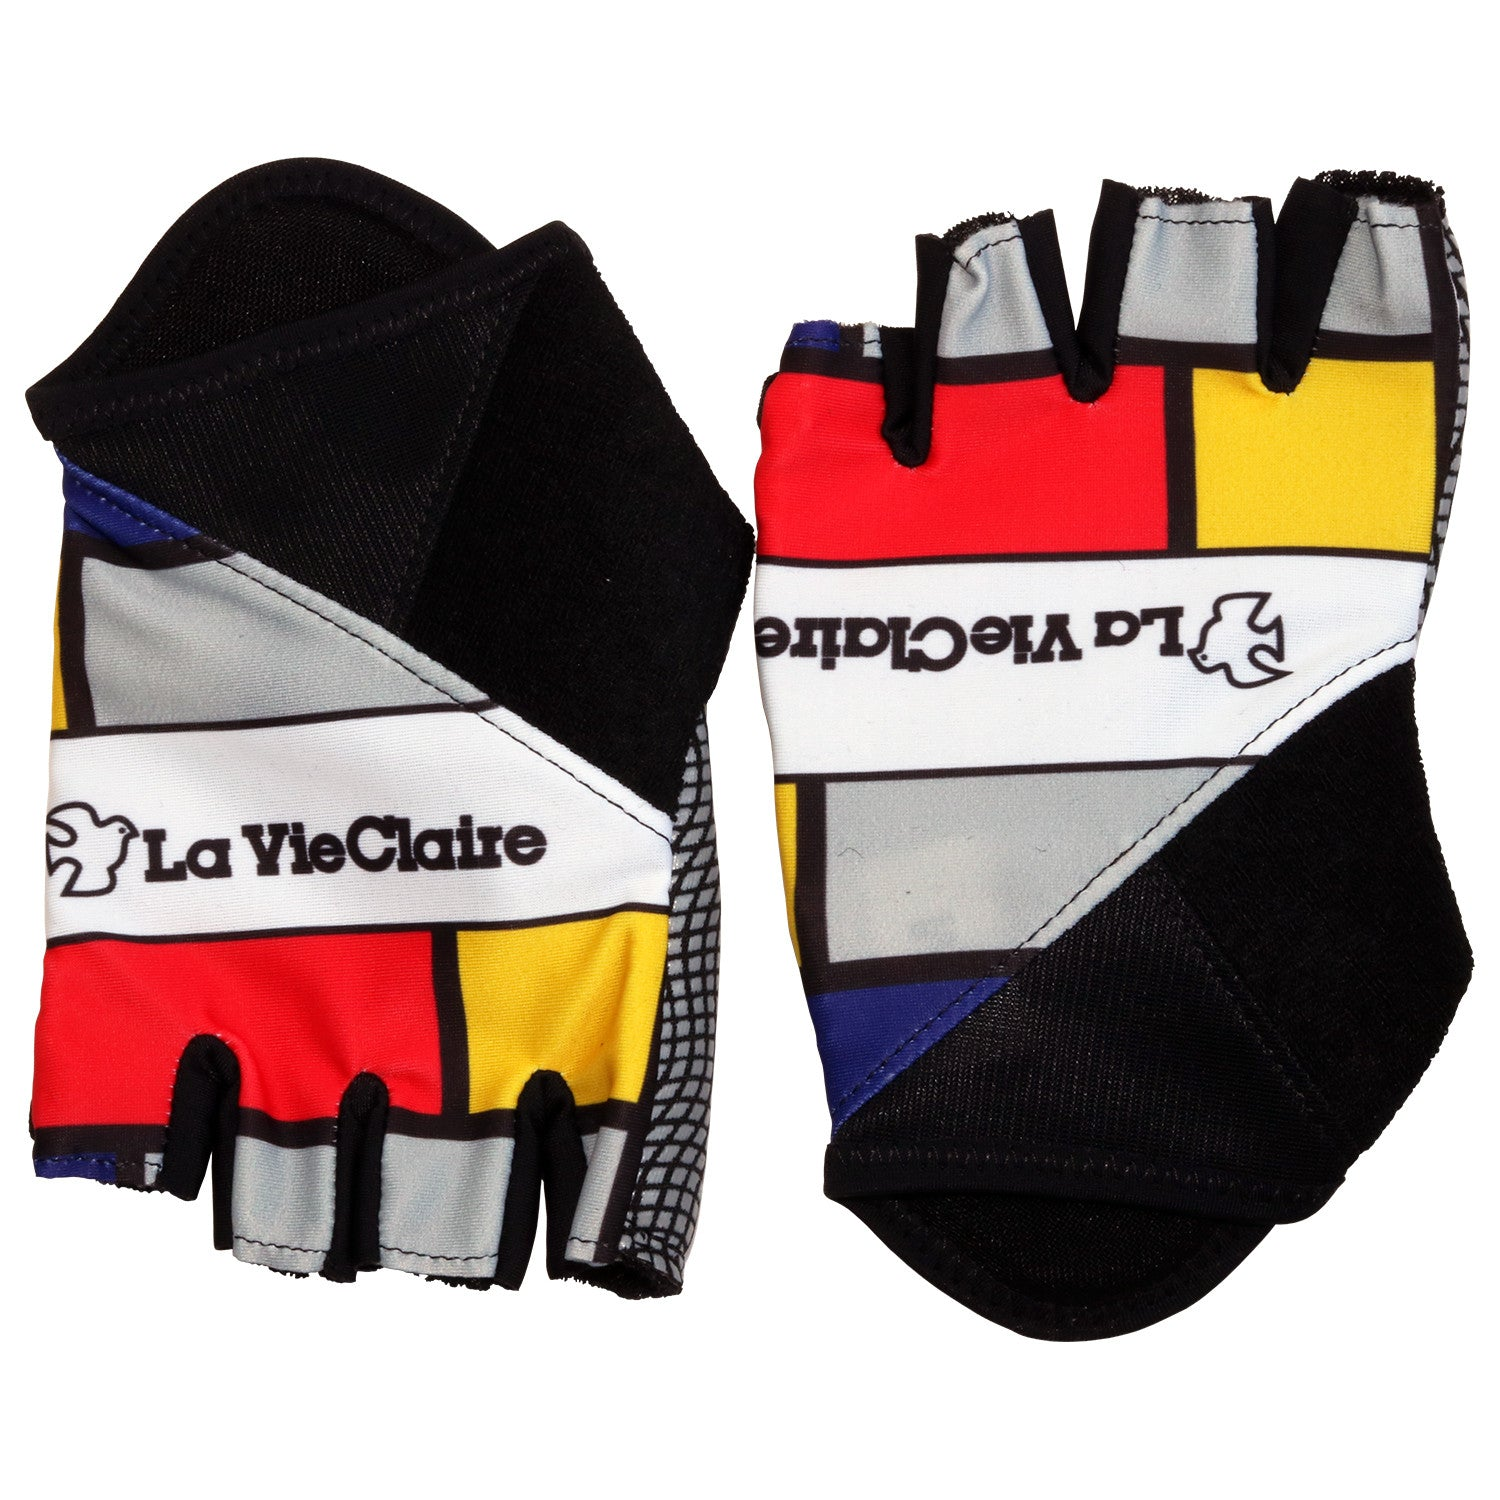 La Vie Claire Summer Cycling Gloves